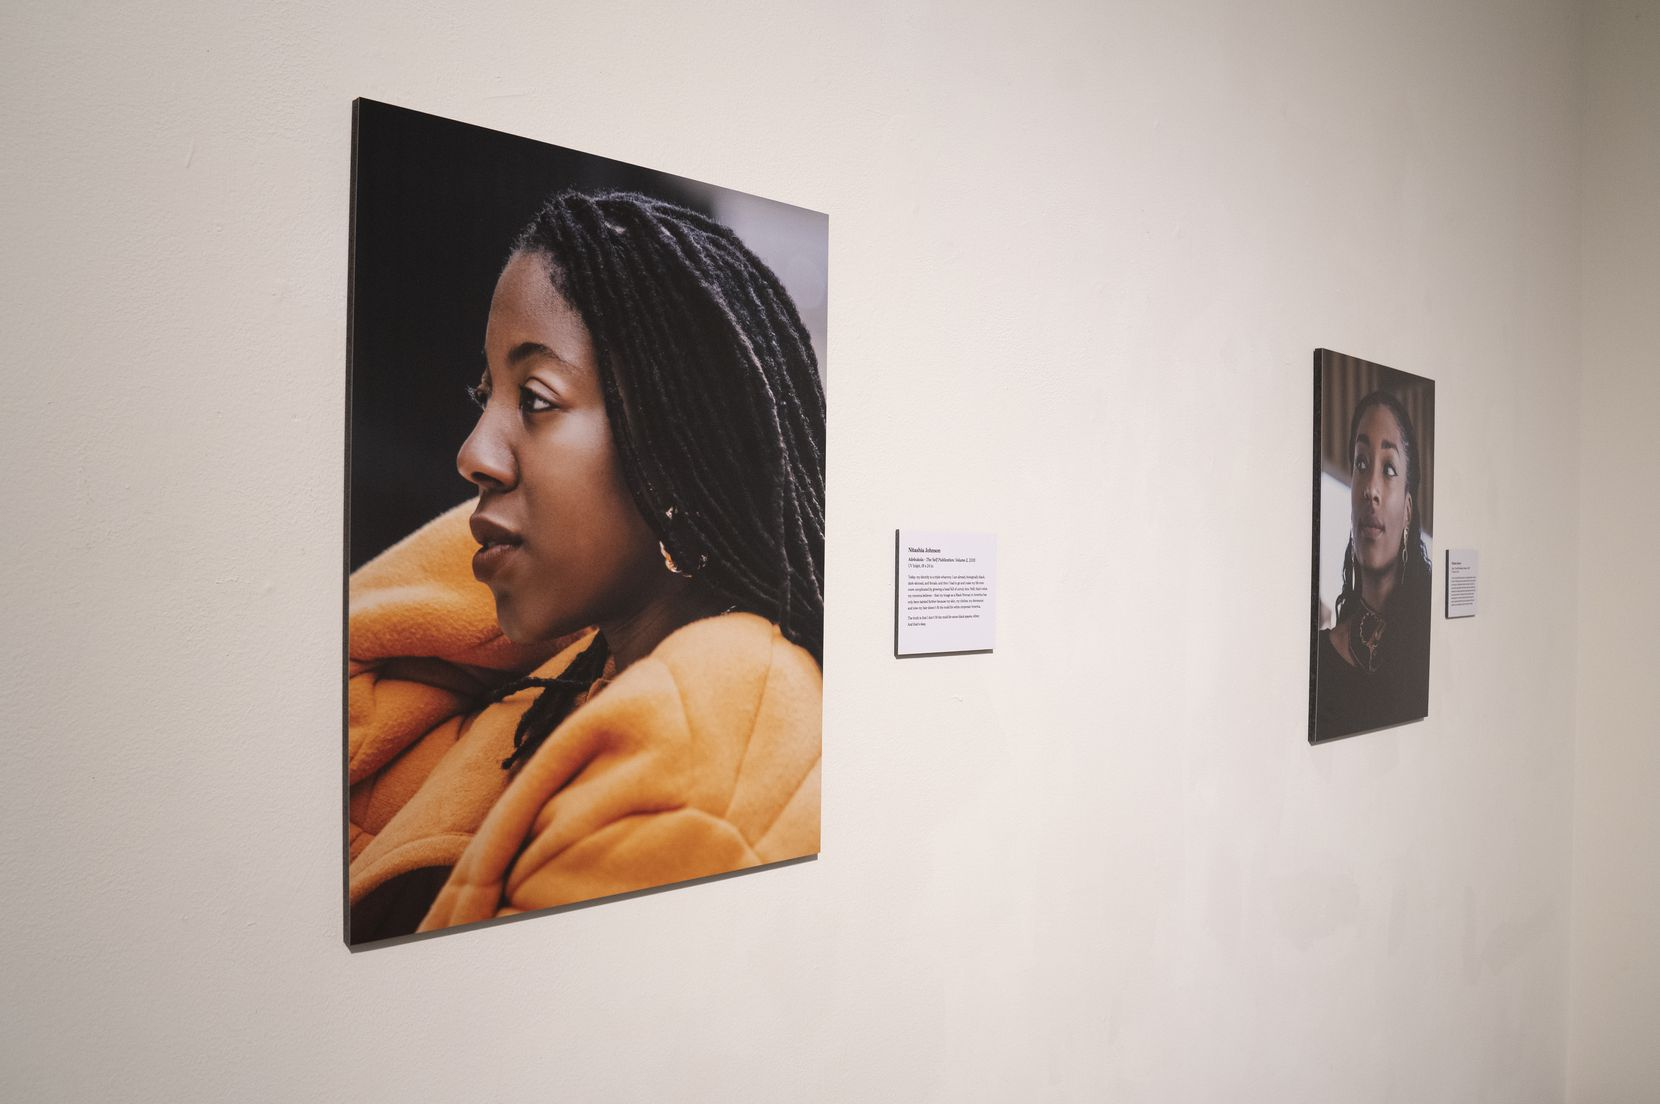 """The Self Publication"" runs through Jan. 4 at the South Dallas Cultural Center."